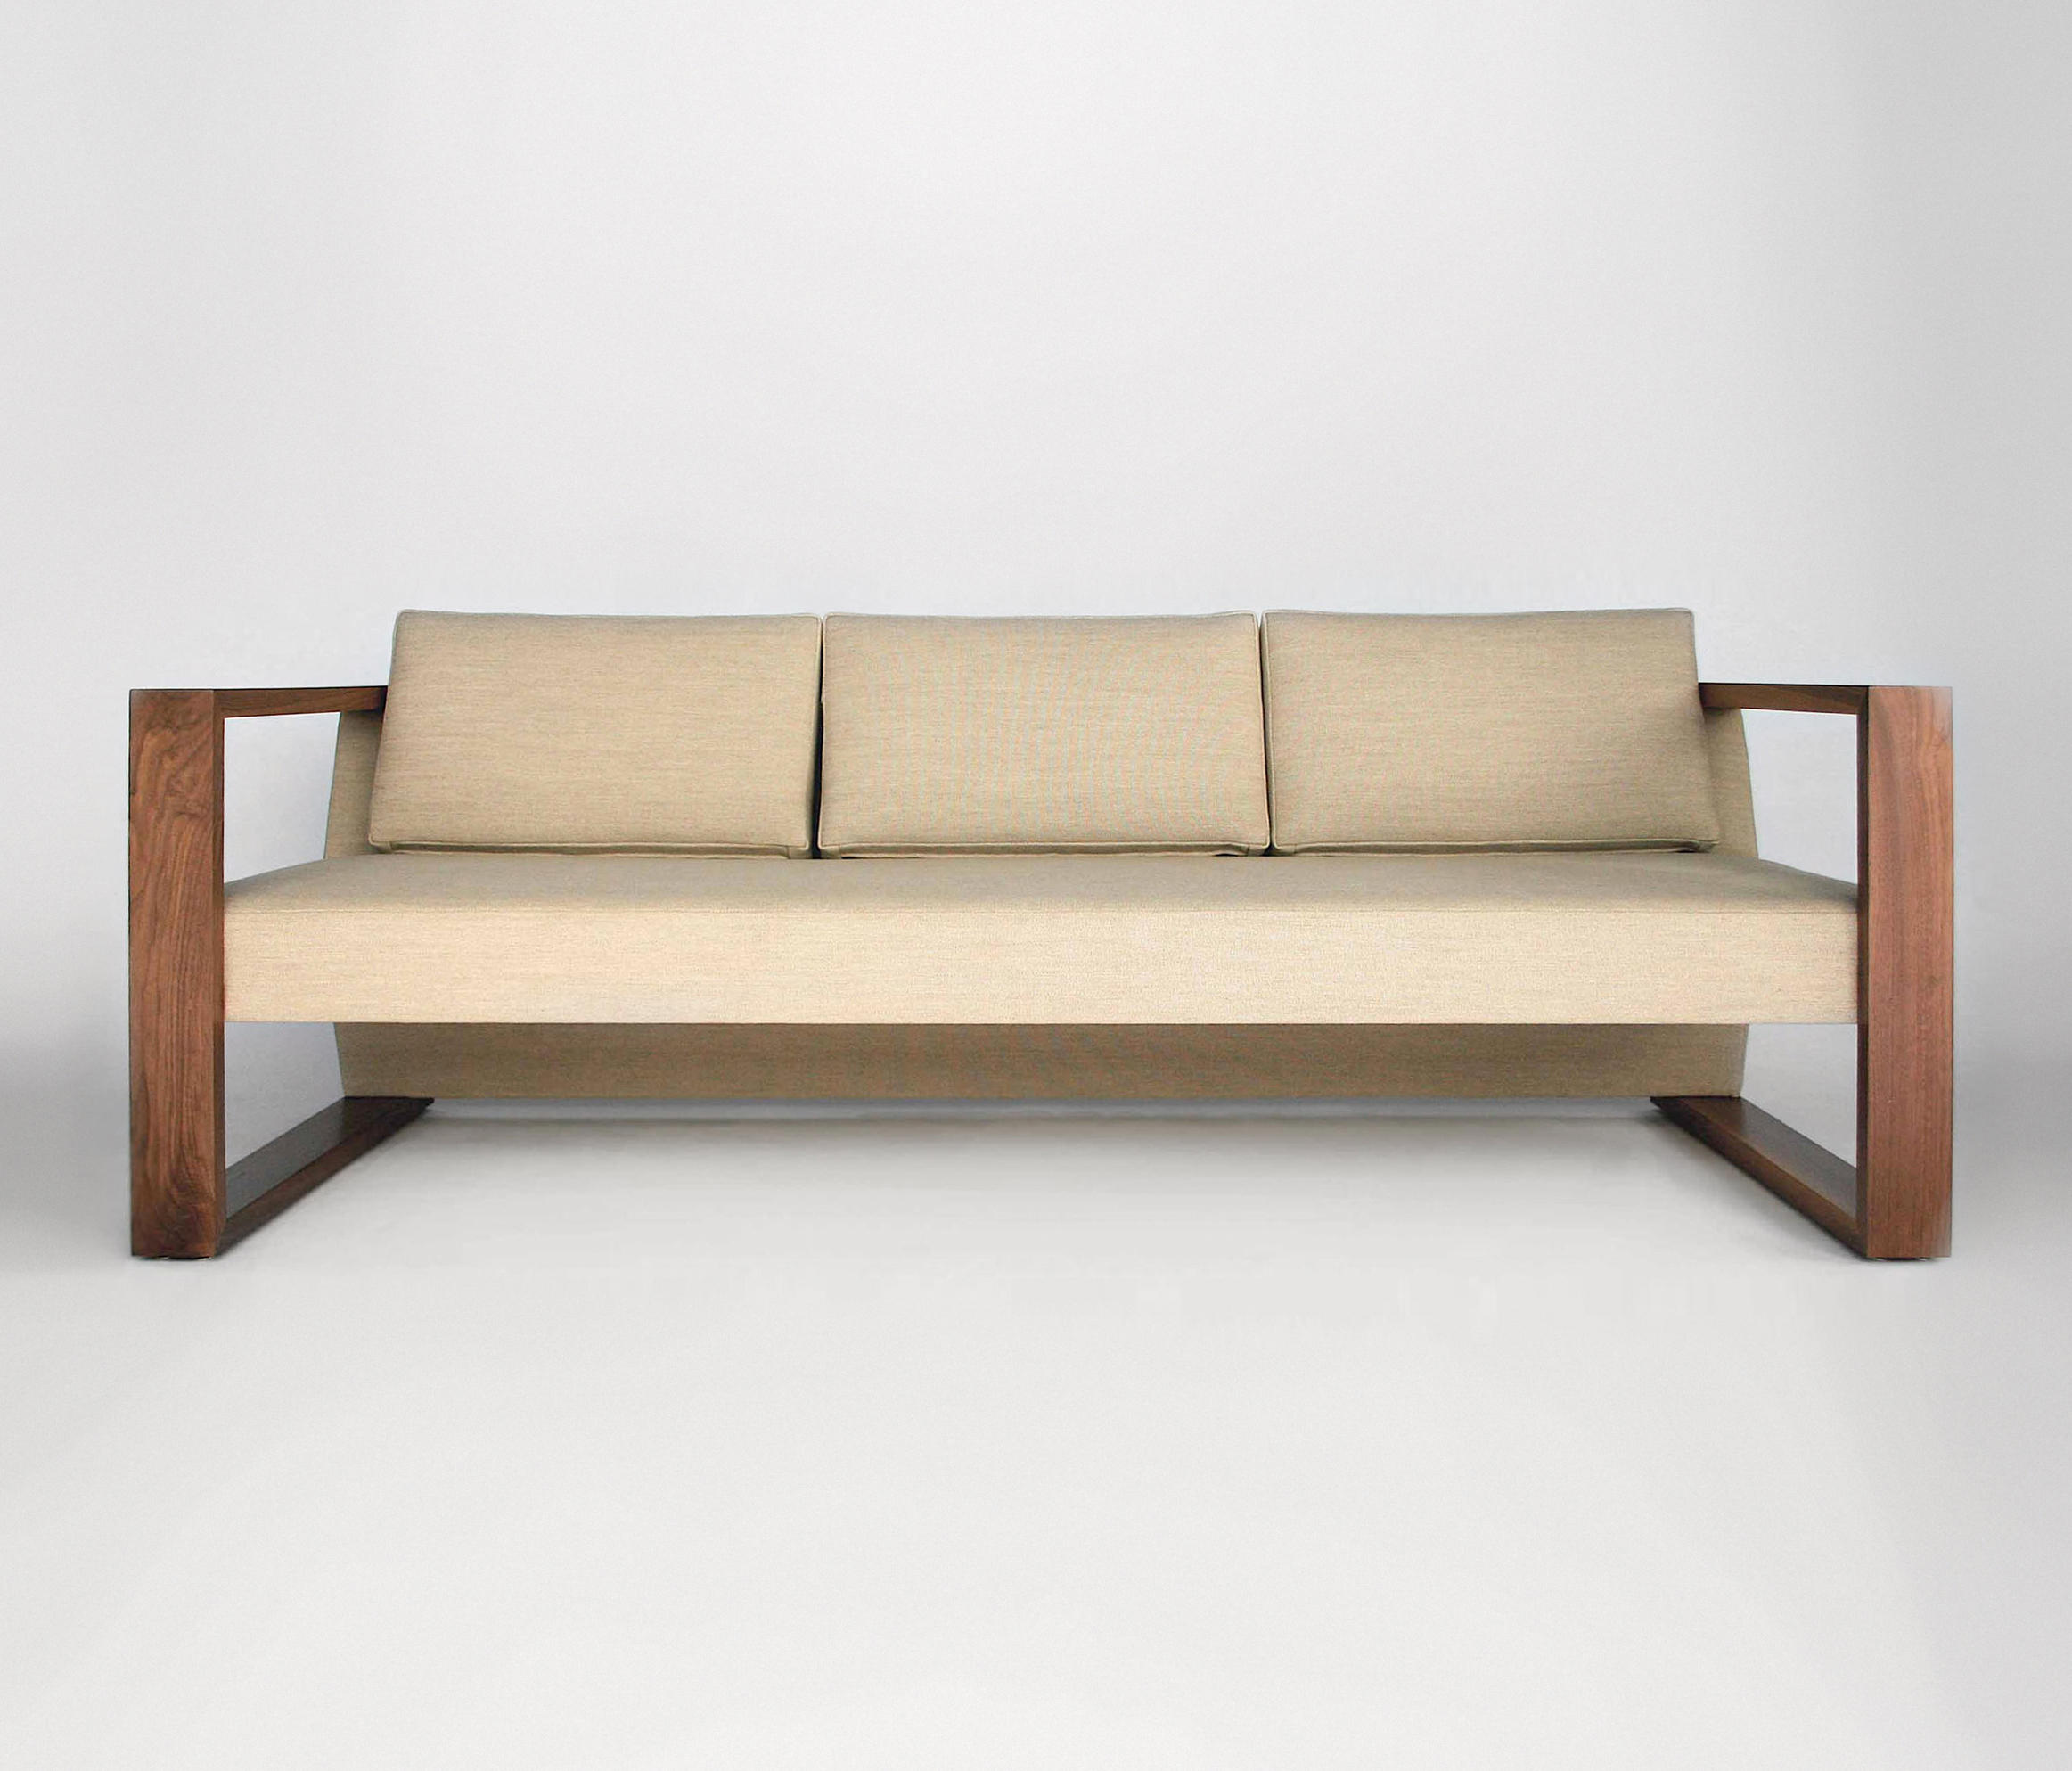 Schlafsofa design lounge  MAXELL SOFA - Lounge sofas from Phase Design | Architonic